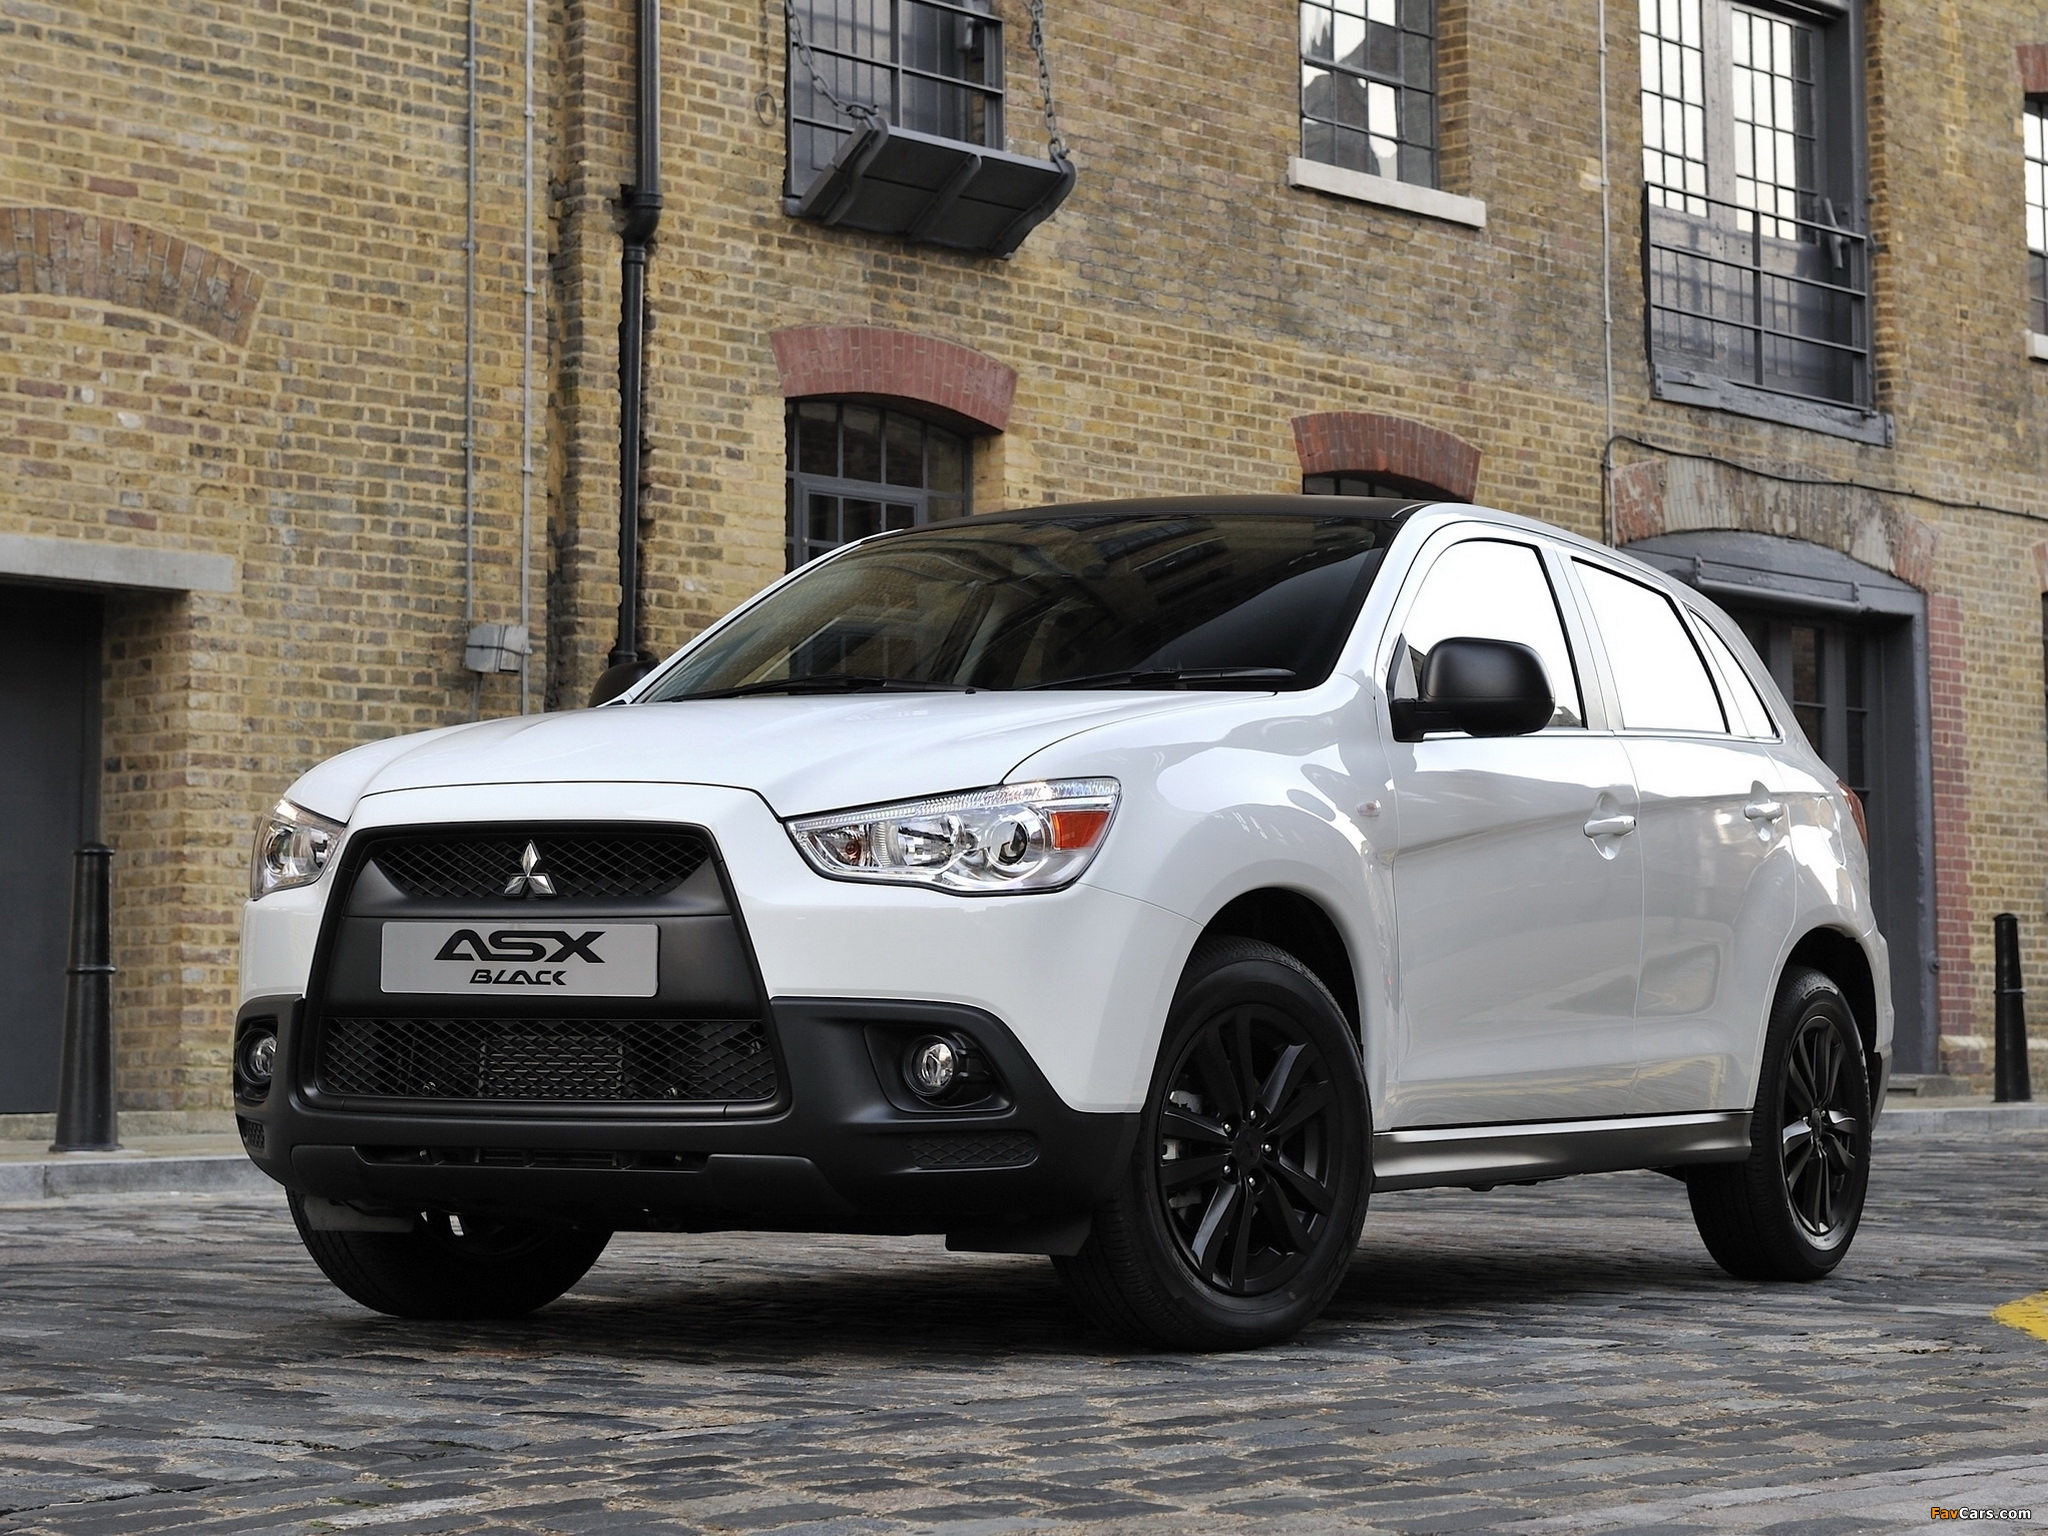 Mitsubishi Asx Black 2011 Wallpapers 47896 furthermore Showthread likewise Gallery in addition 442 Waterford also 745935. on black car ads